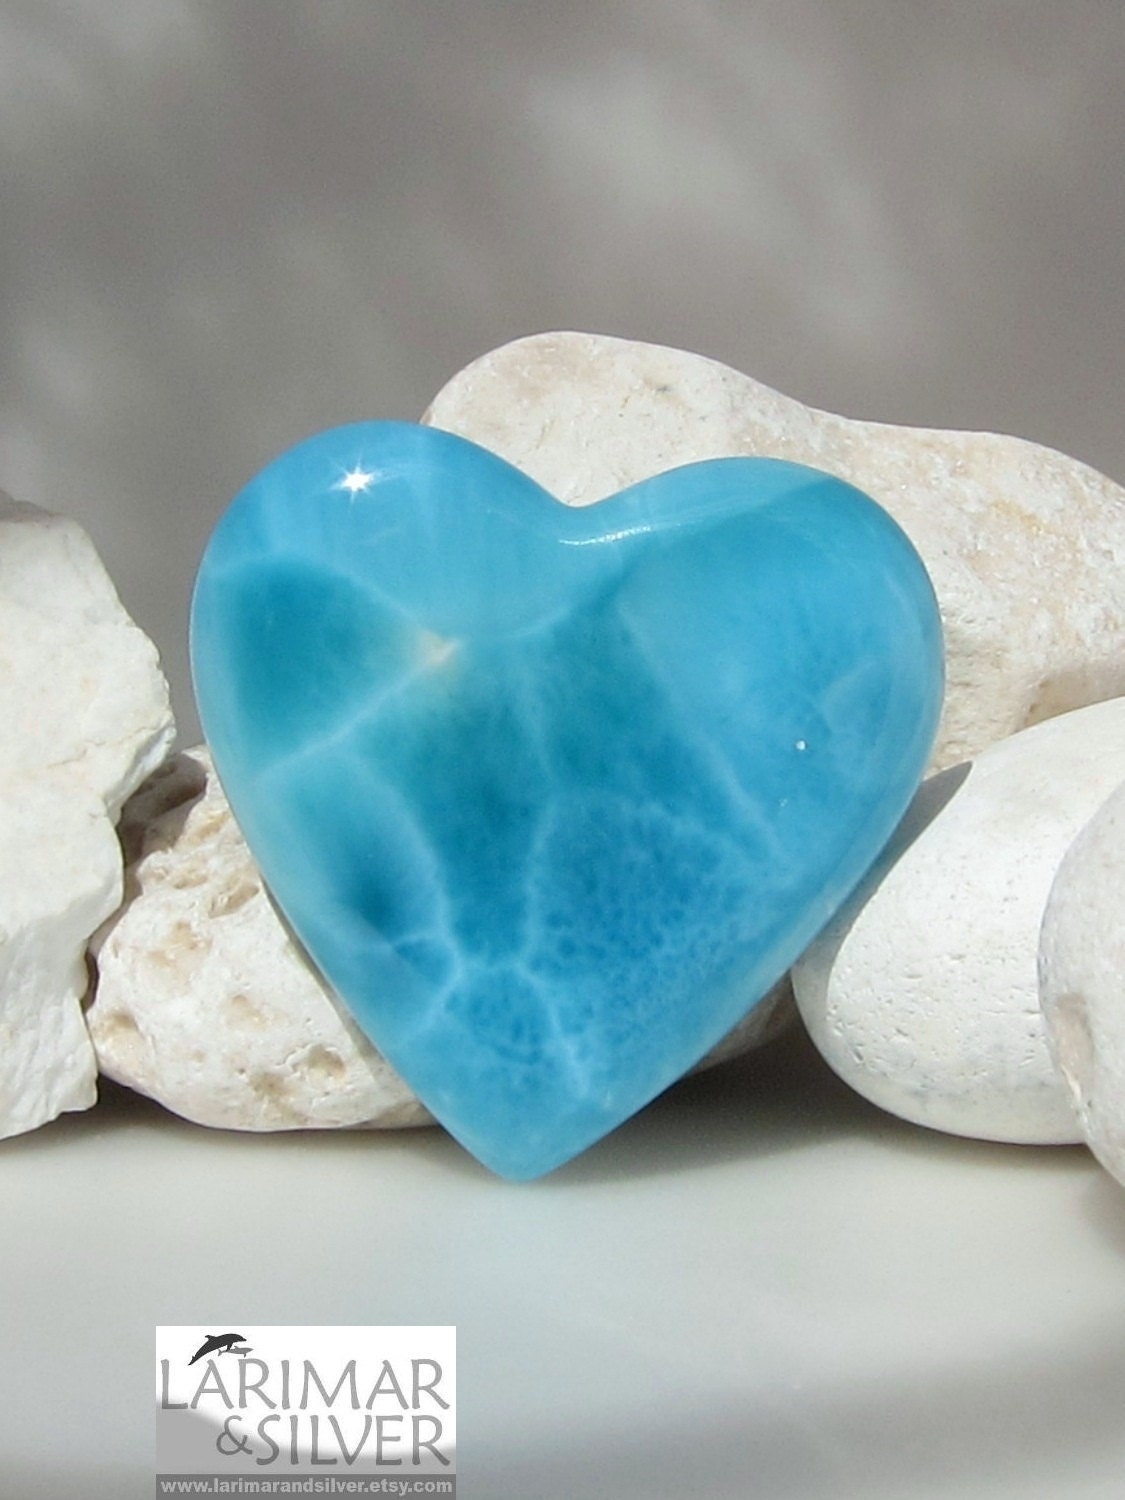 Larimar Heart Shaped Cabochon Impressive Big Aaa Turtle Back